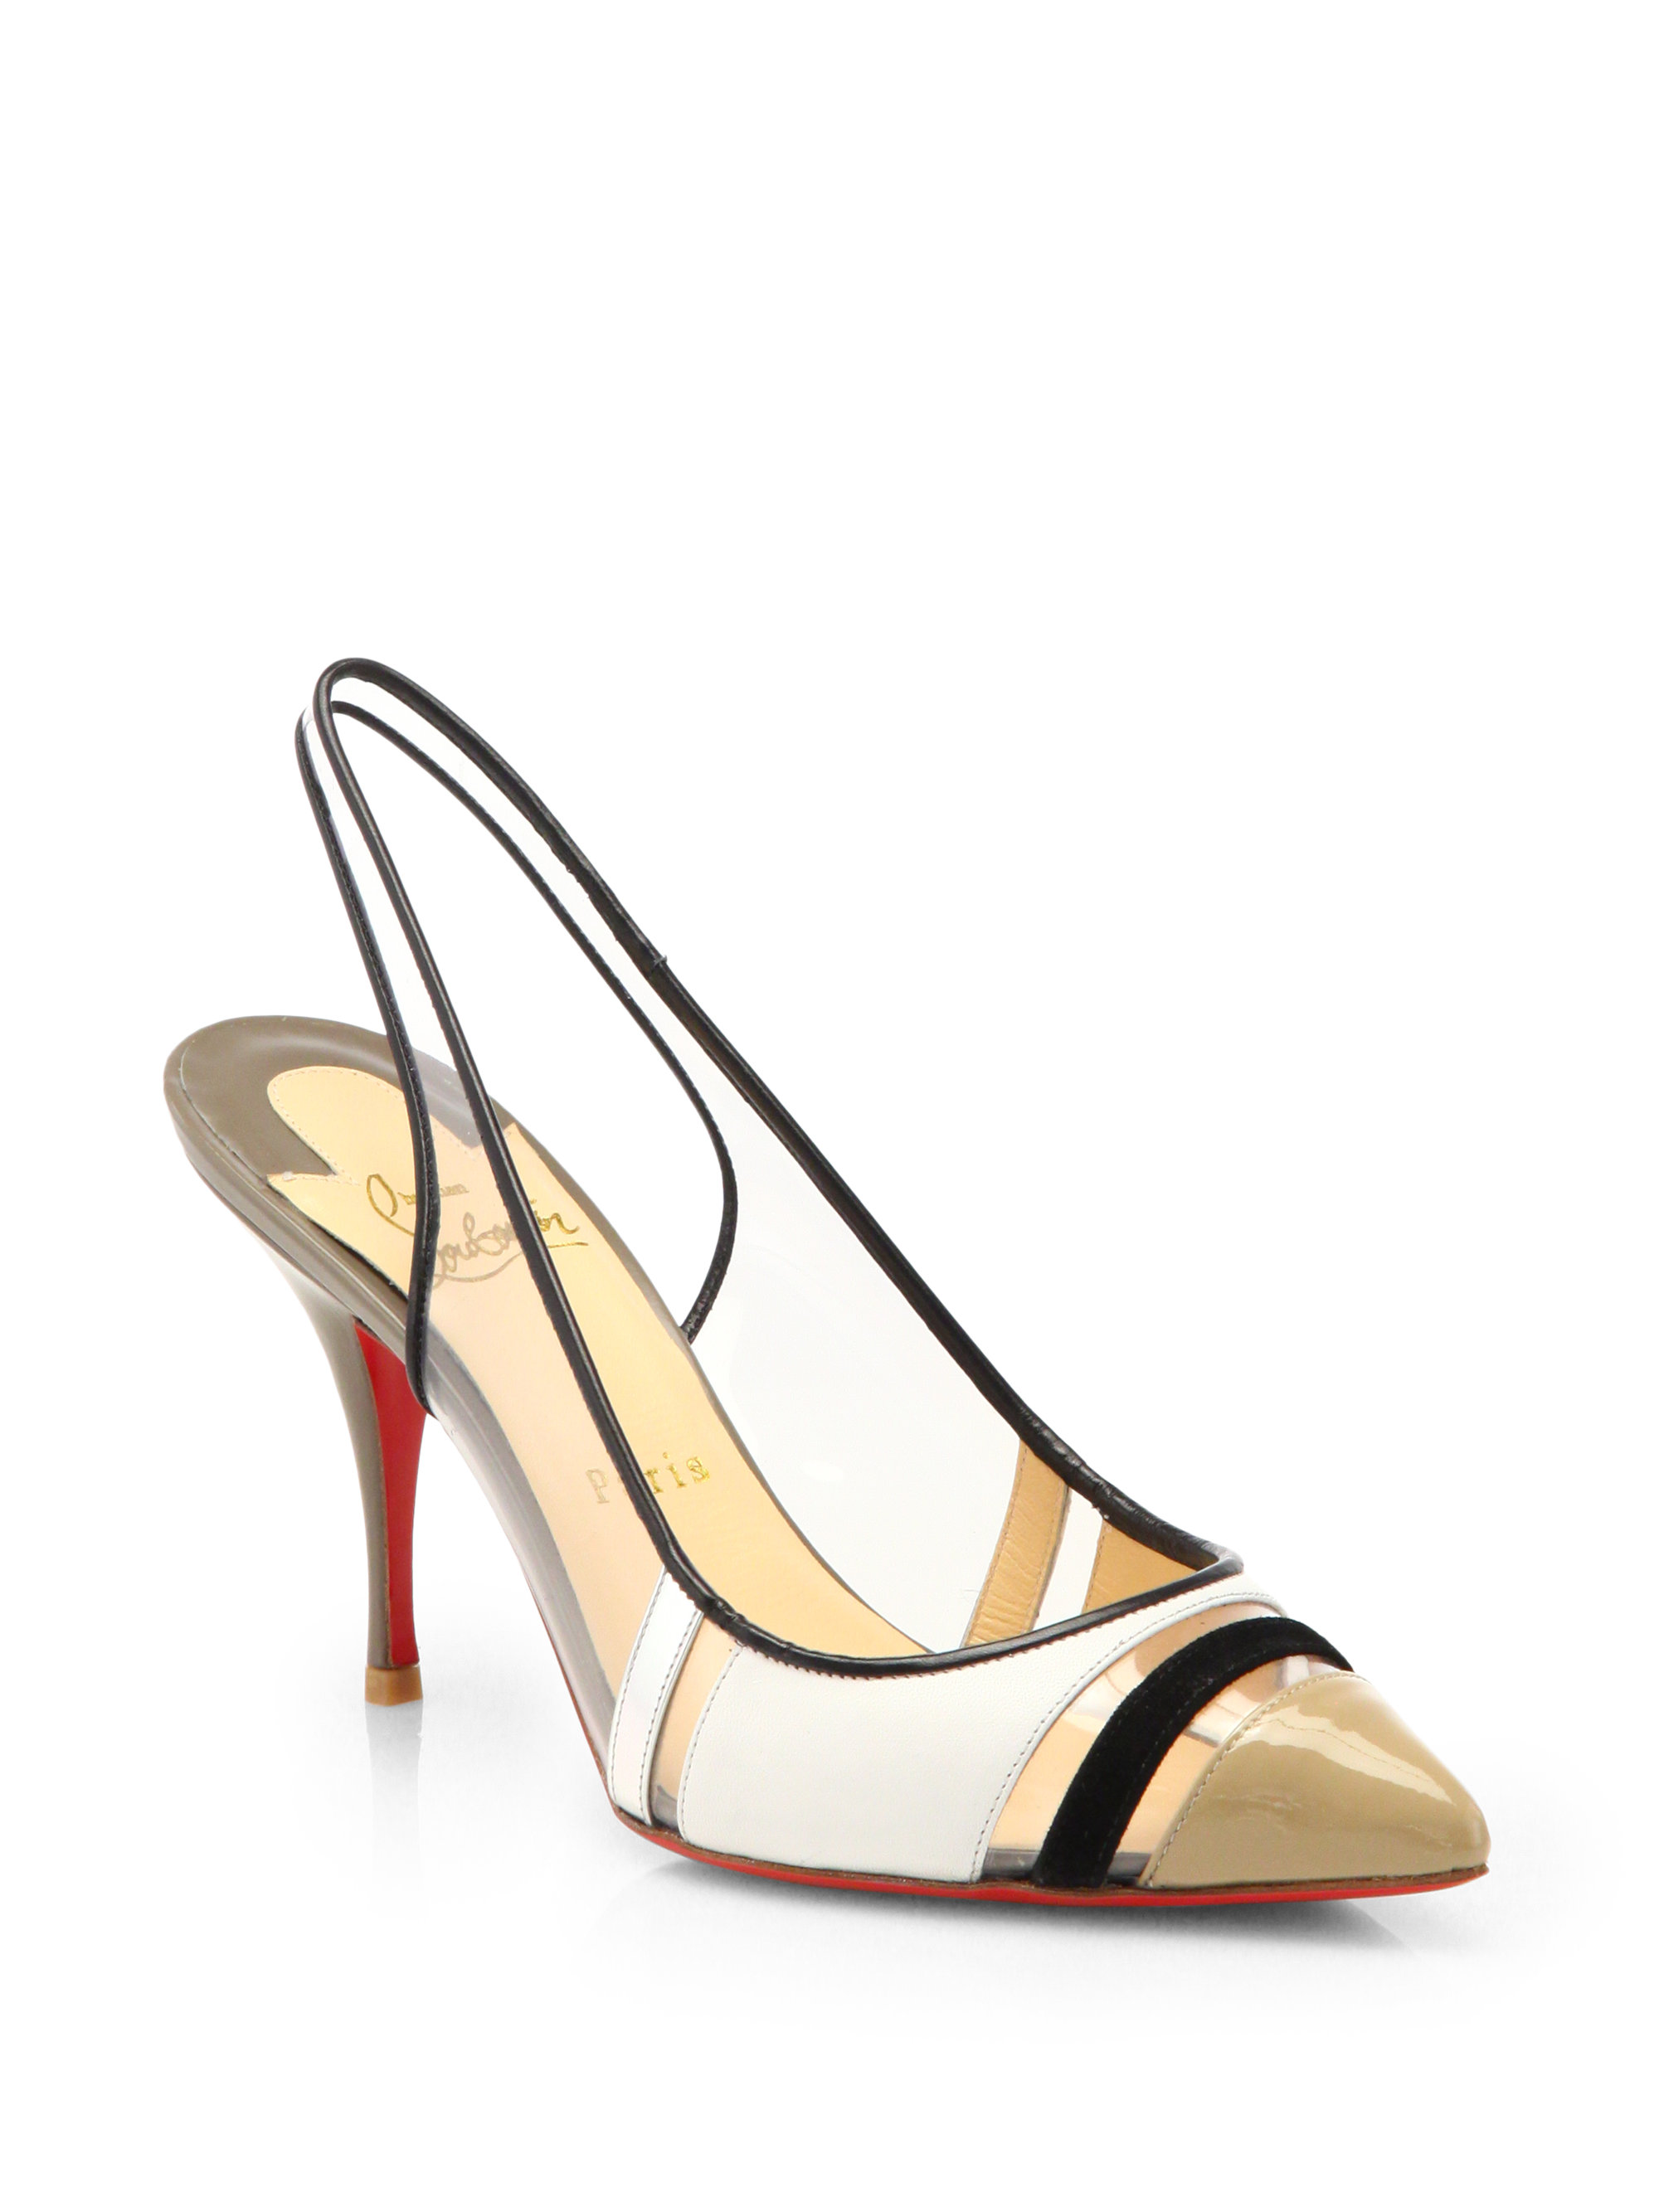 christian louboutin leather plexi wedge slingback pumps | Natural ...